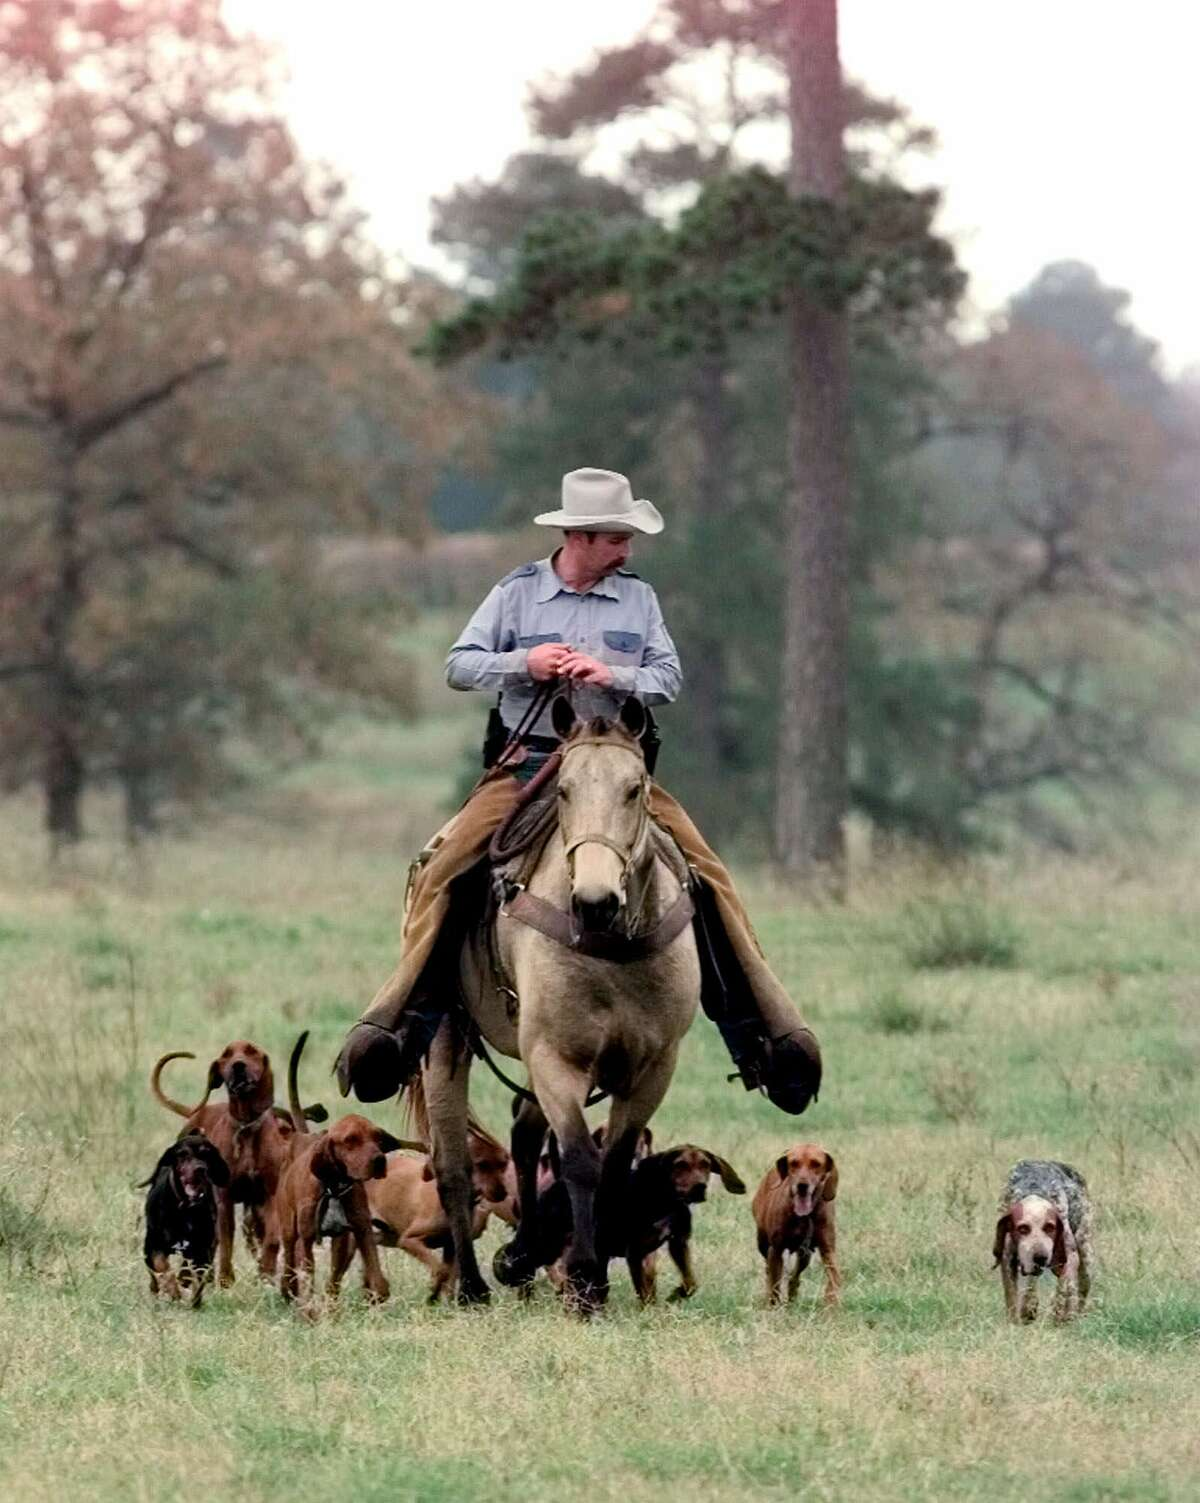 Tracking dogs, as well as horses and helicopters, were used in the search for death row inmate Martin Gurule, who escaped from the Ellis Unit on Thanksgiving 1998. On the Monday after the holiday, Thomas Reedreturns with a group of tracking dogs, but no sign of Gurule.